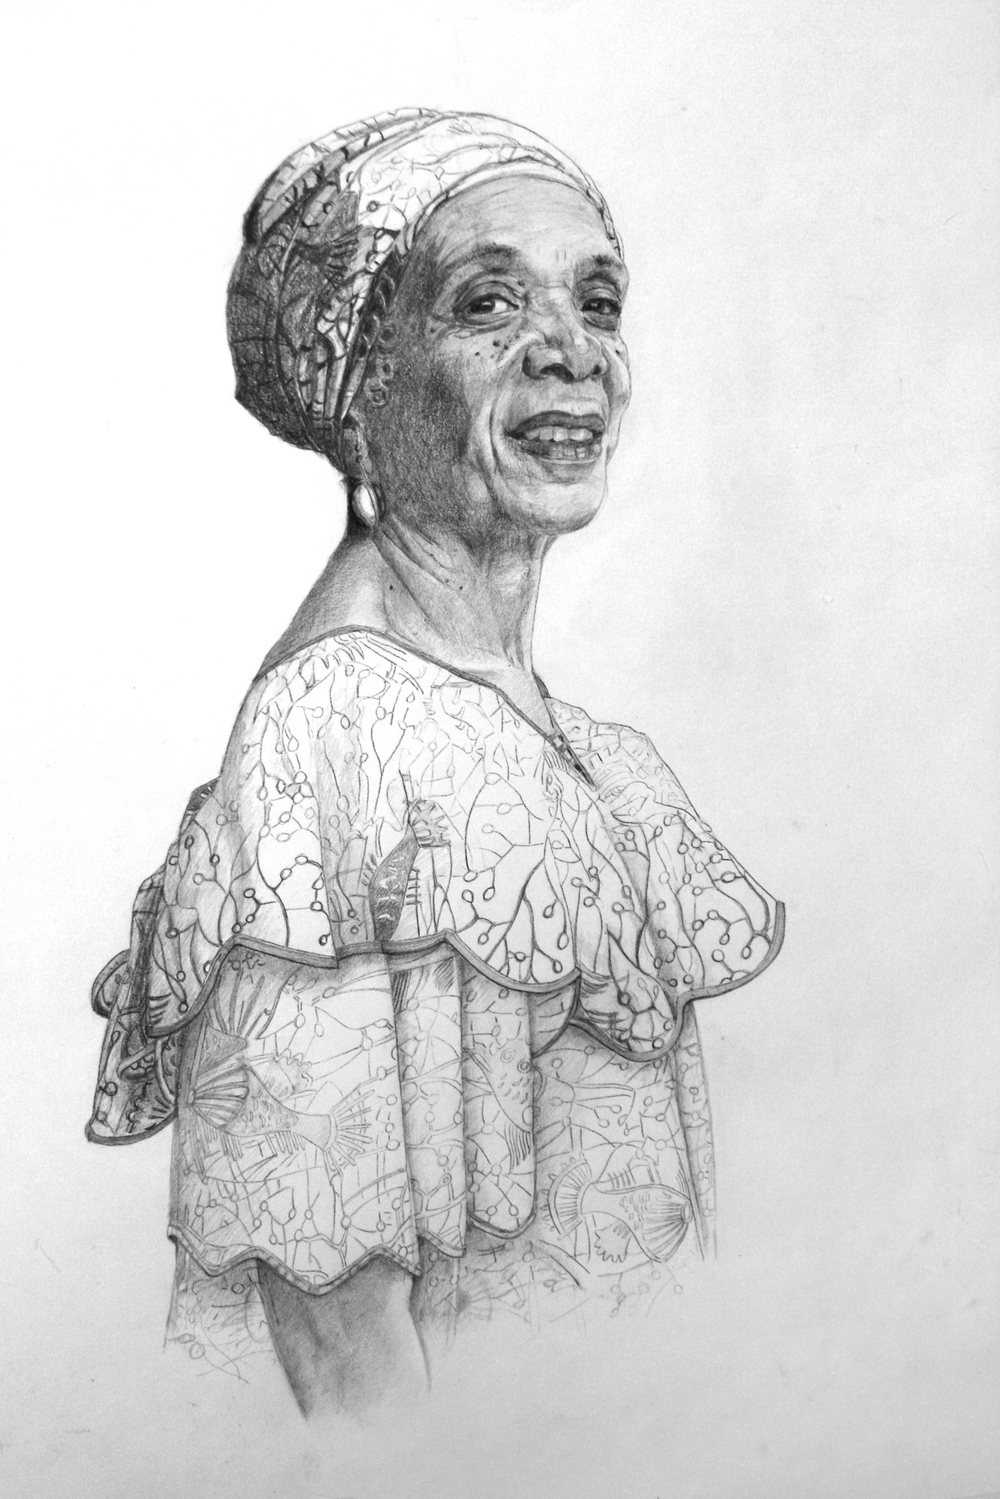 HONORABLE MENTION - Omonike (2016) | Cherryl Pape | Graphite on paper | 24x30"